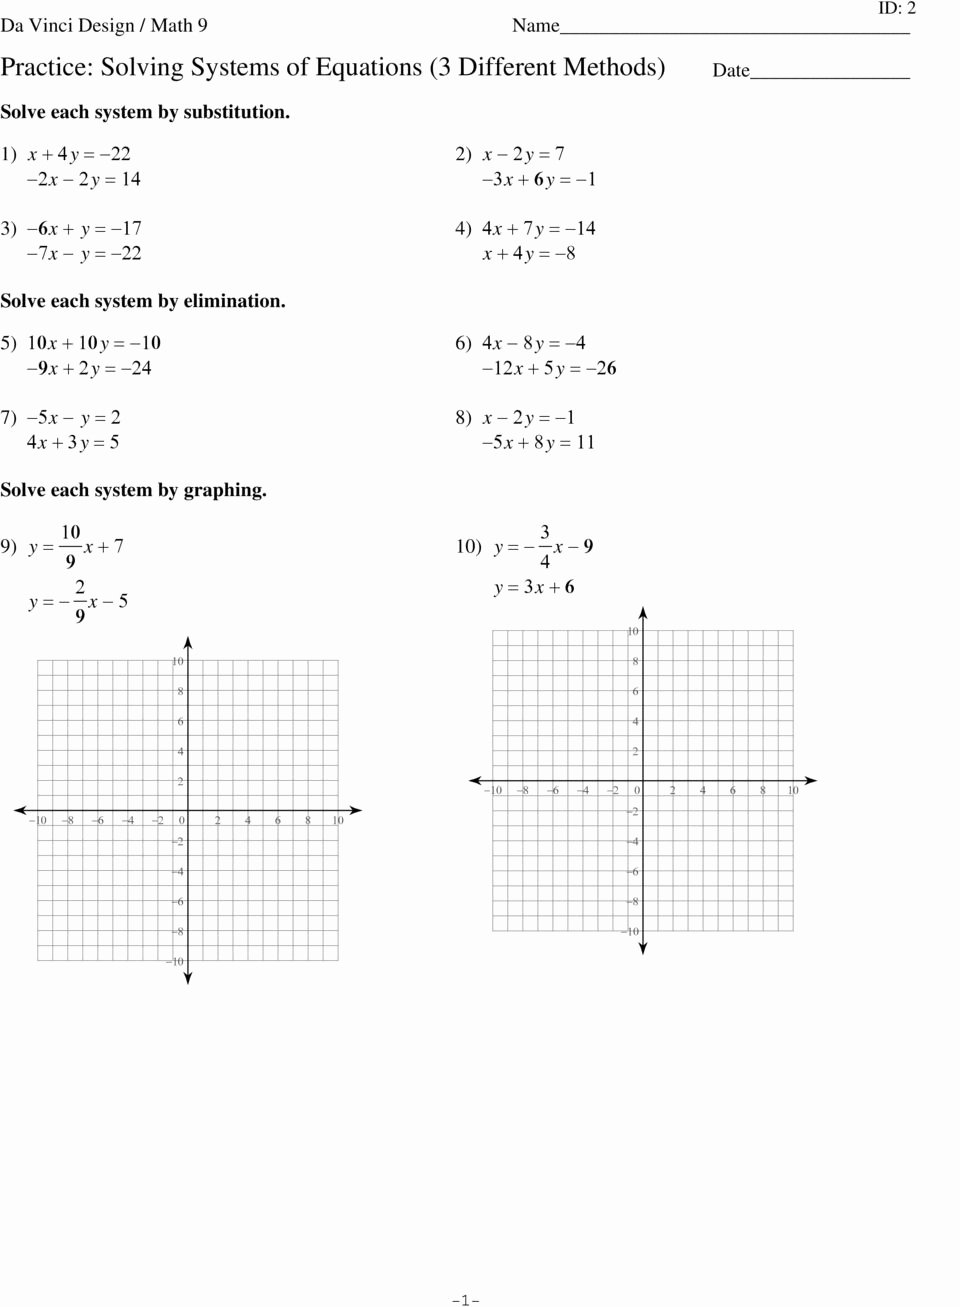 Systems Of Equations Practice Worksheet Unique Practice solving Systems Of Equations 3 Different